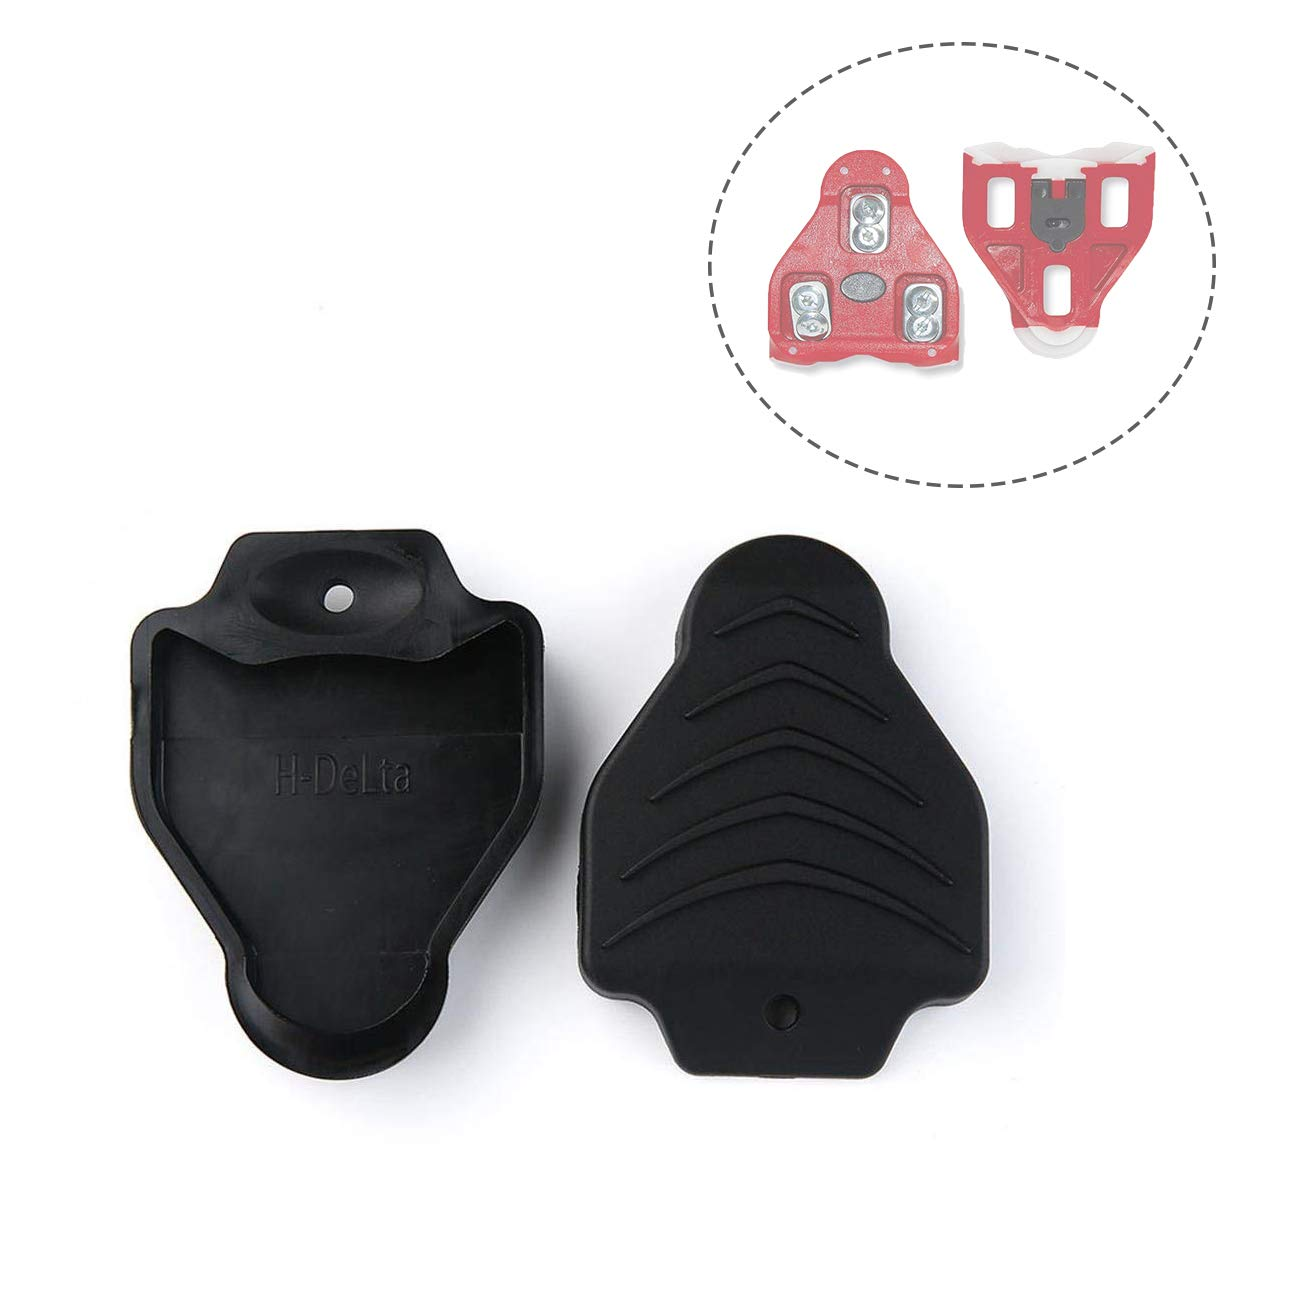 Thinvik Cleat Covers Bicycle Shoe Clipless Protector for Look Delta Pedal Cleats Systems(1 Pair) by Thinvik (Image #1)